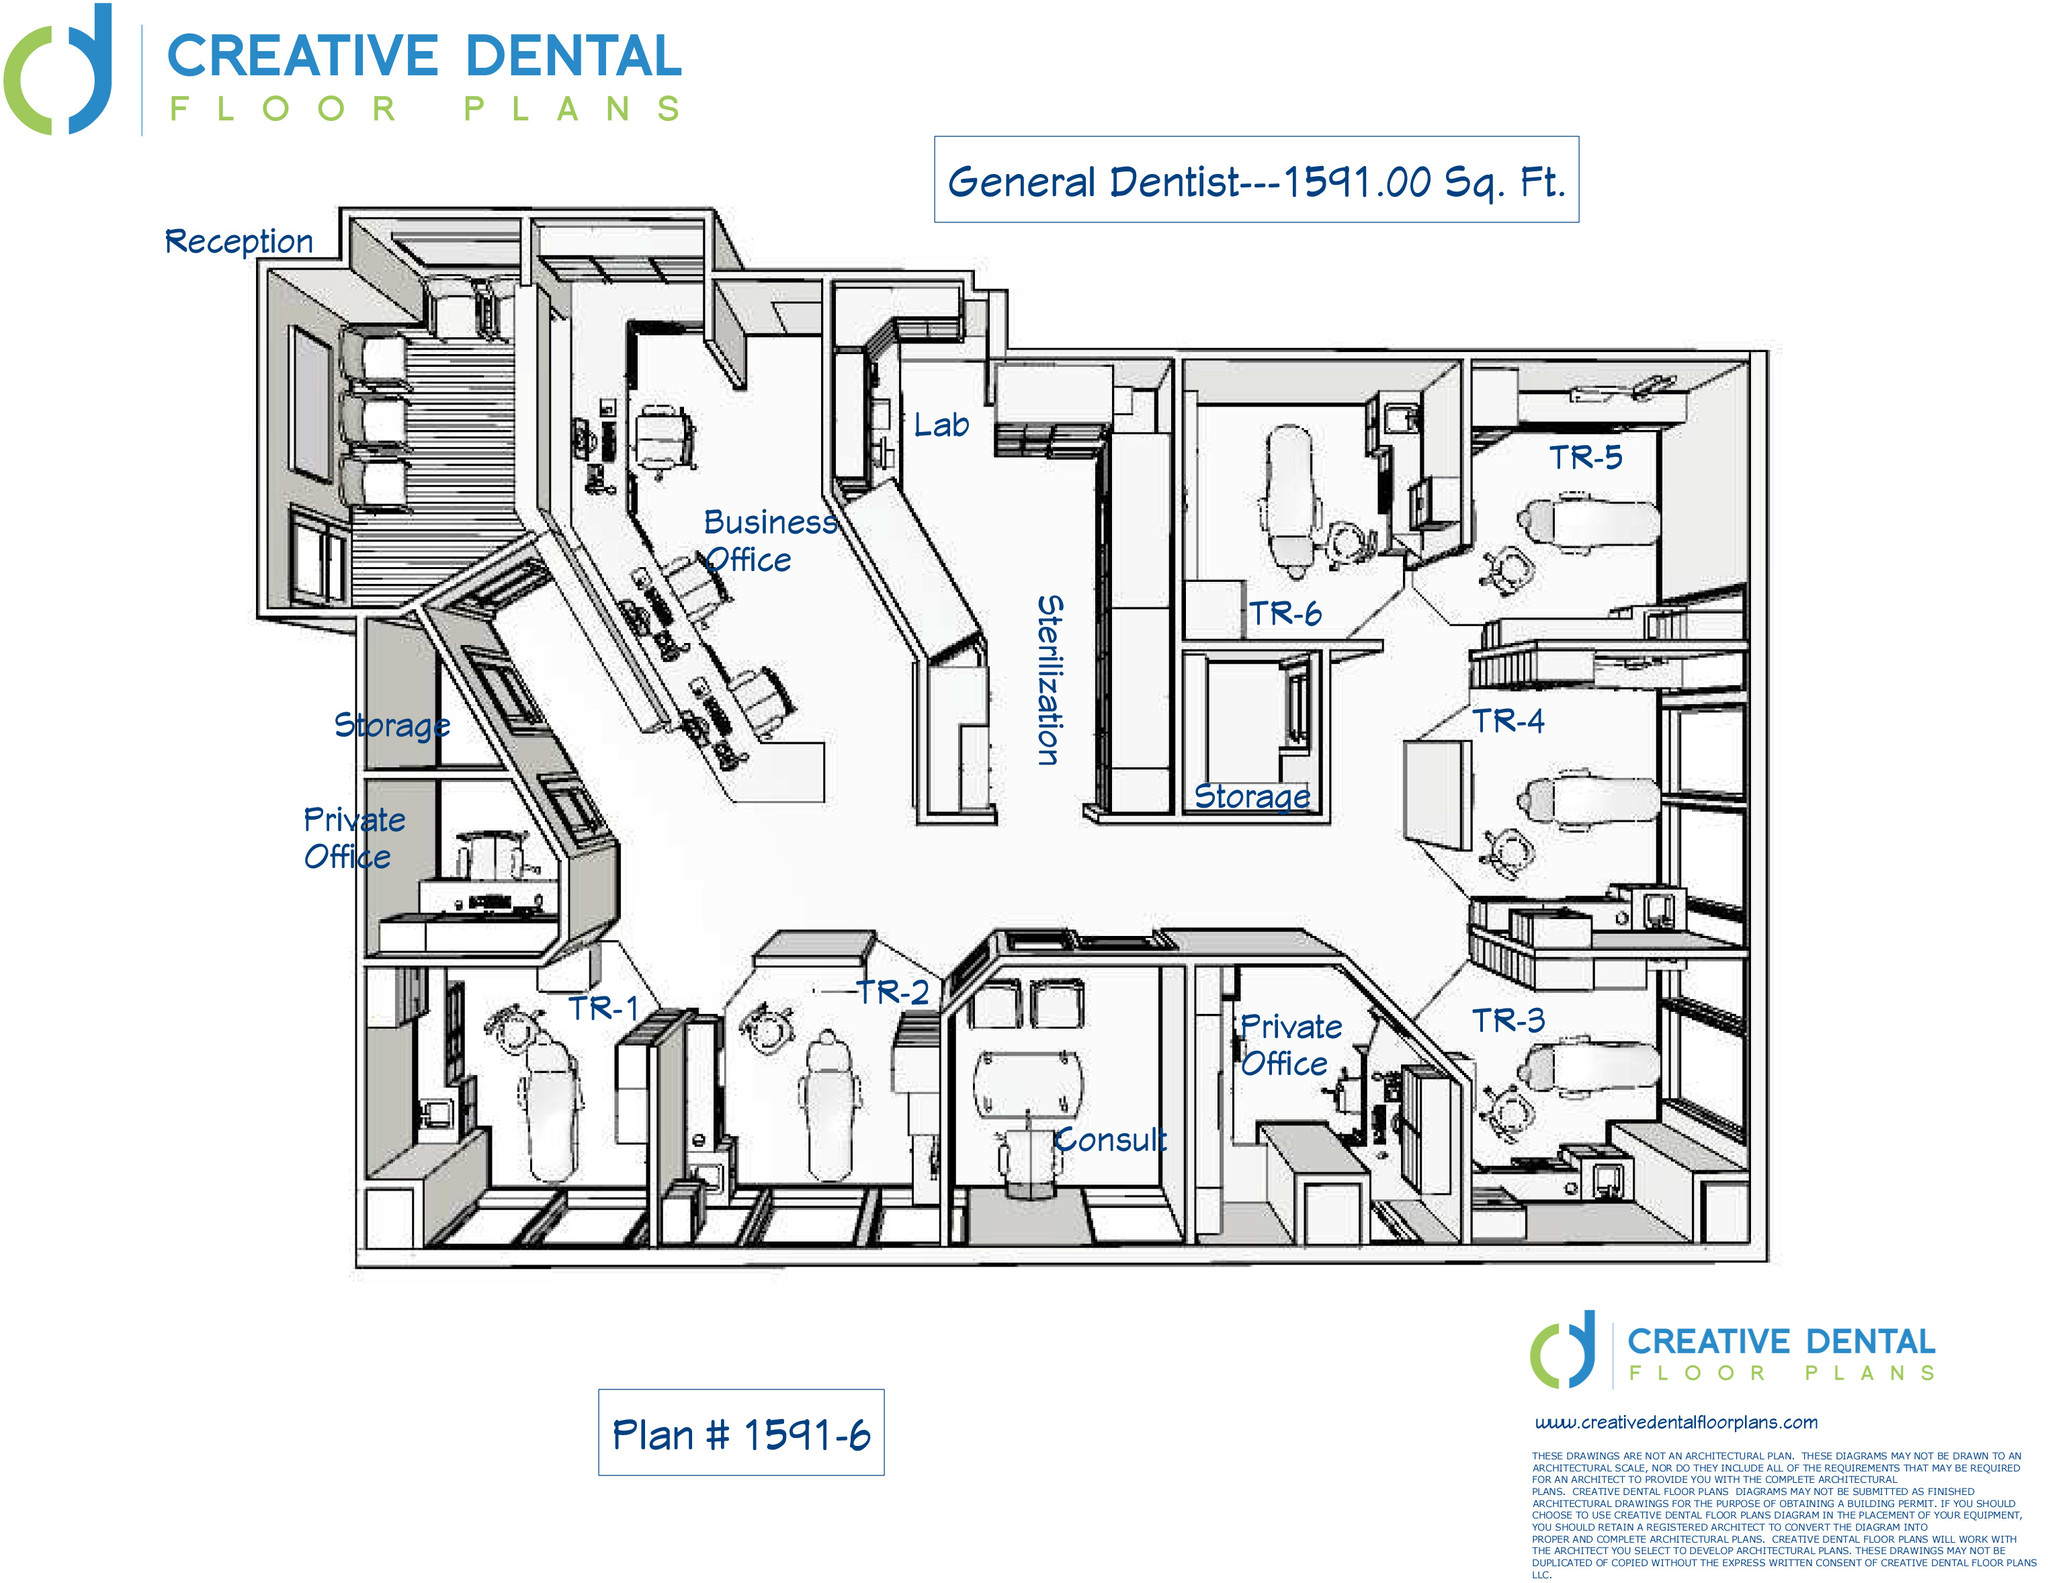 Creative dental floor plans strip mall floor plans for Office layout plan design